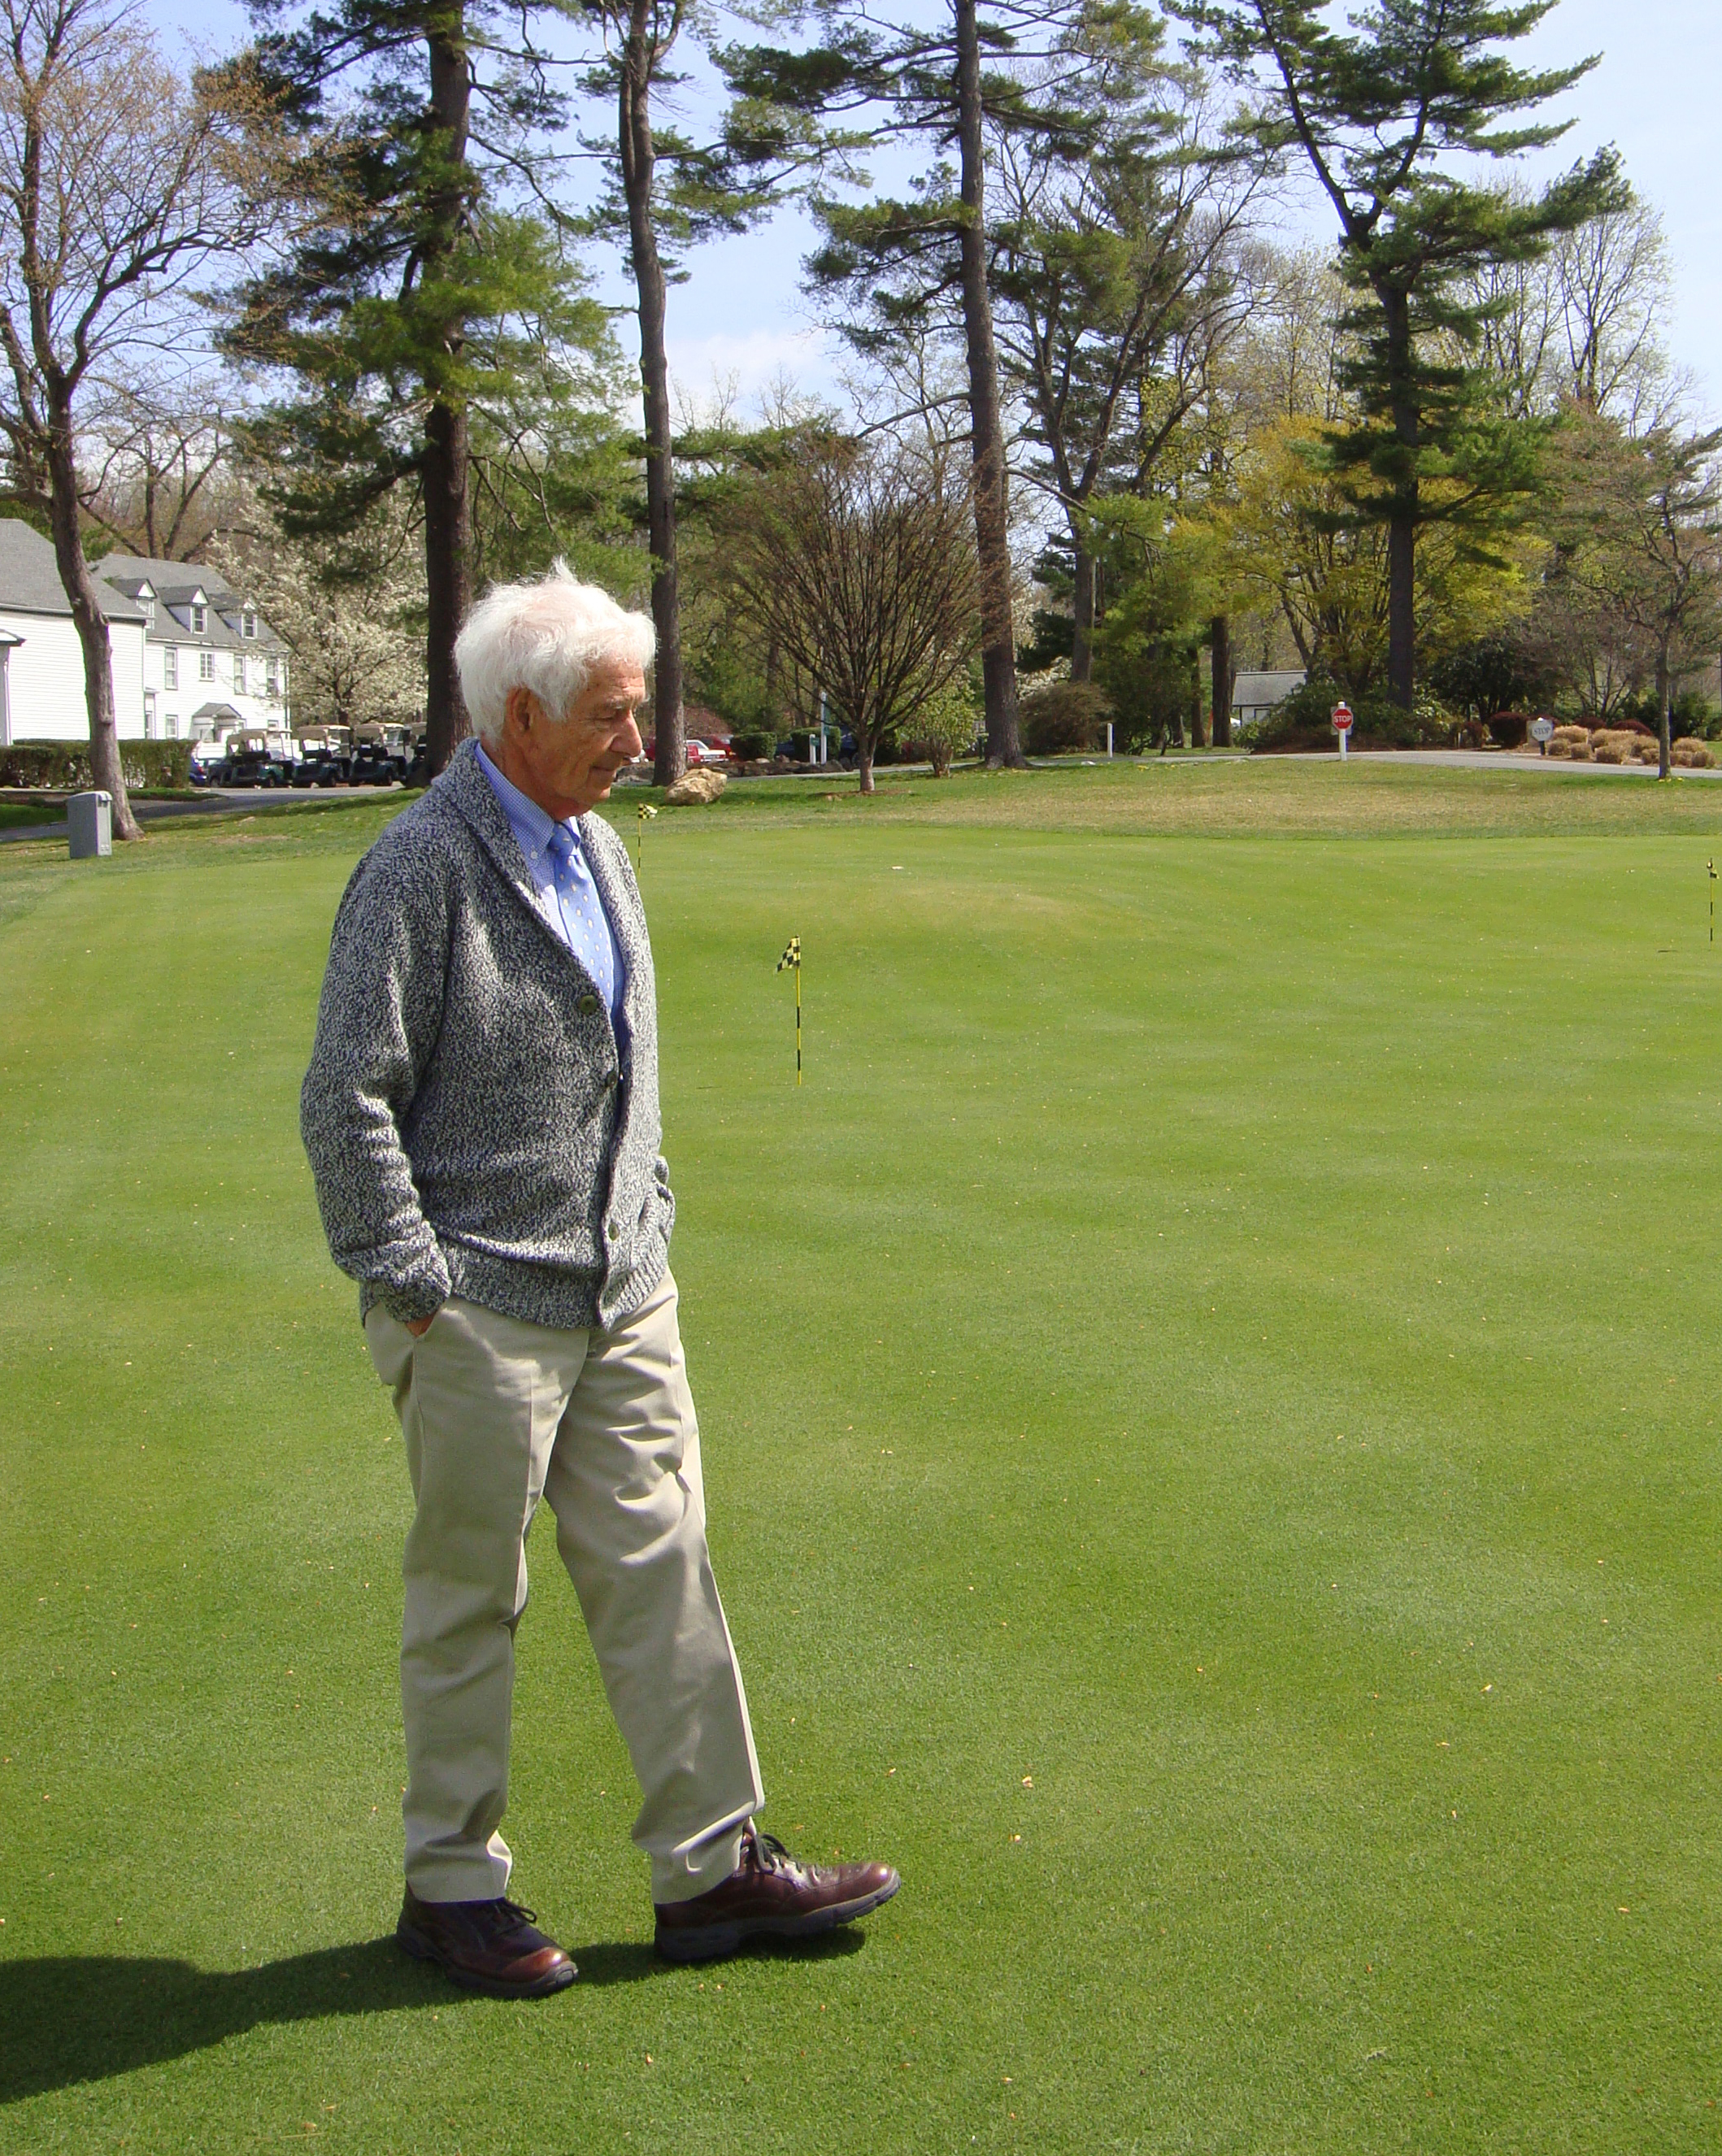 North Shore Country Club owner Don Zucker